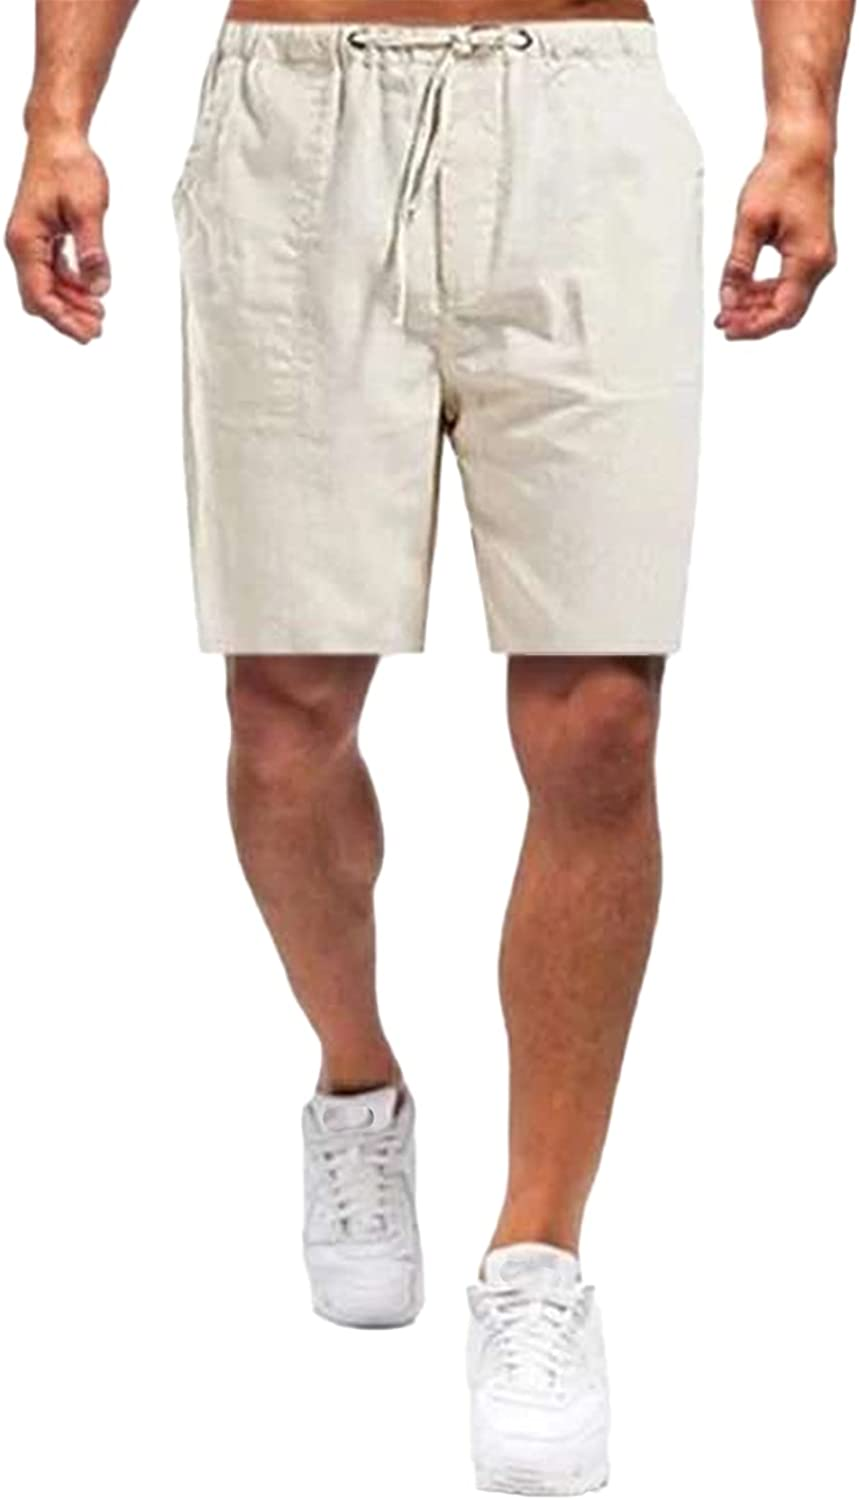 Men's Casual Workout Cotton Linen Shorts Elastic Waist Relaxed Fit Running Short Breathable Comfy Loose Cargo Short-Pant